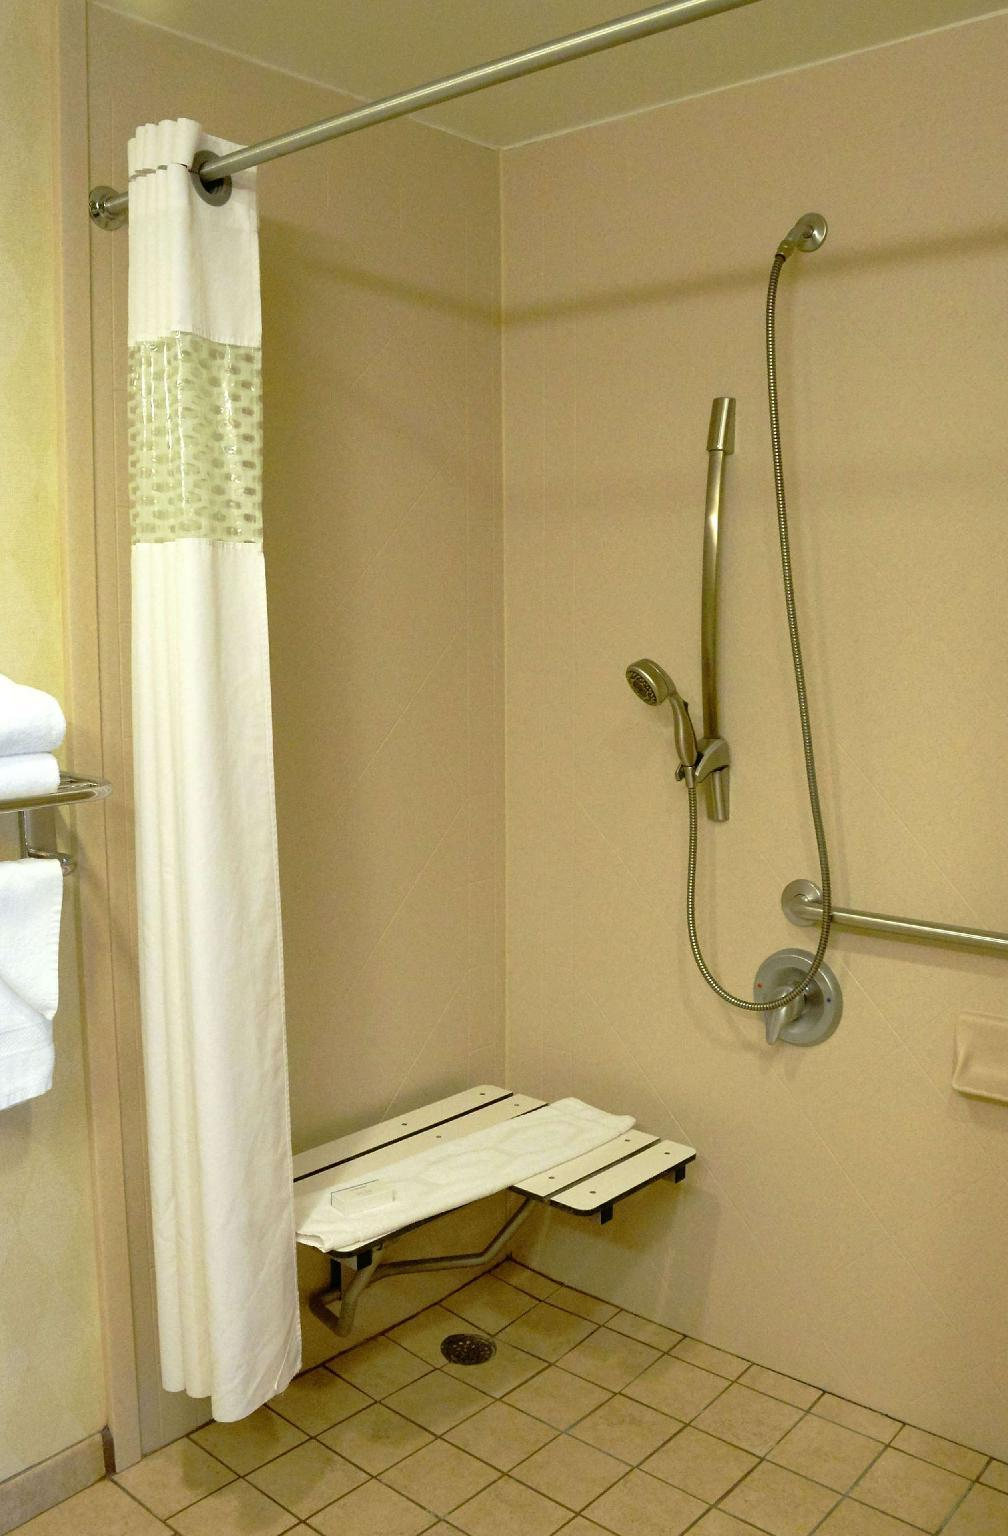 2 Queen Mobility Hearing Accessible Roll In Shower Studio Non-Smoking